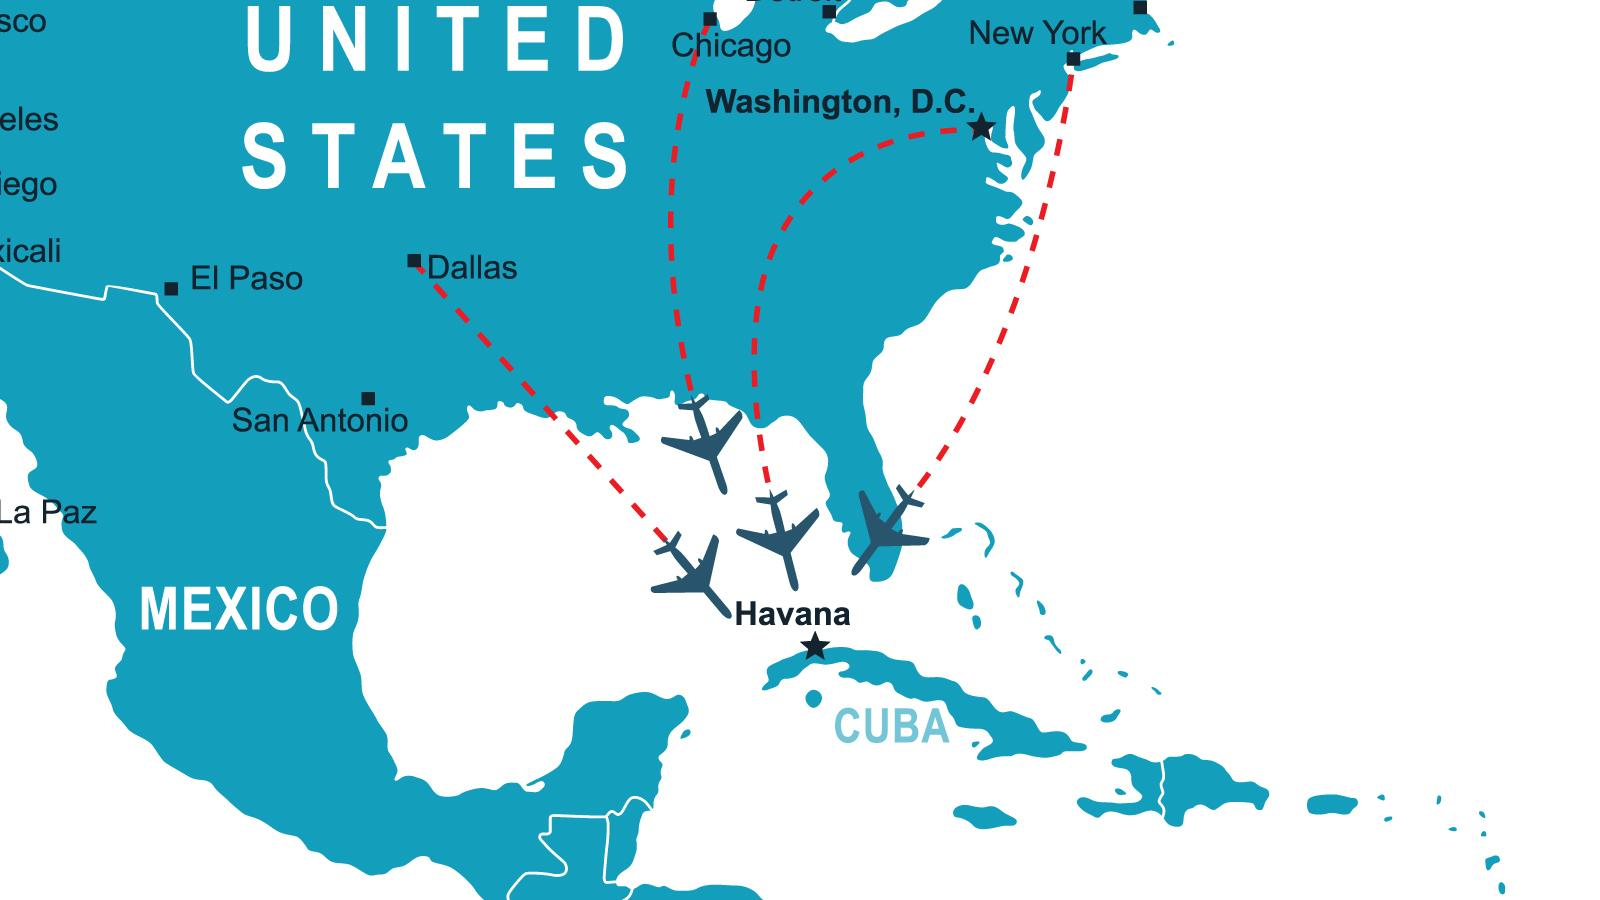 U.S. Tourism to Cuba Jumped in June